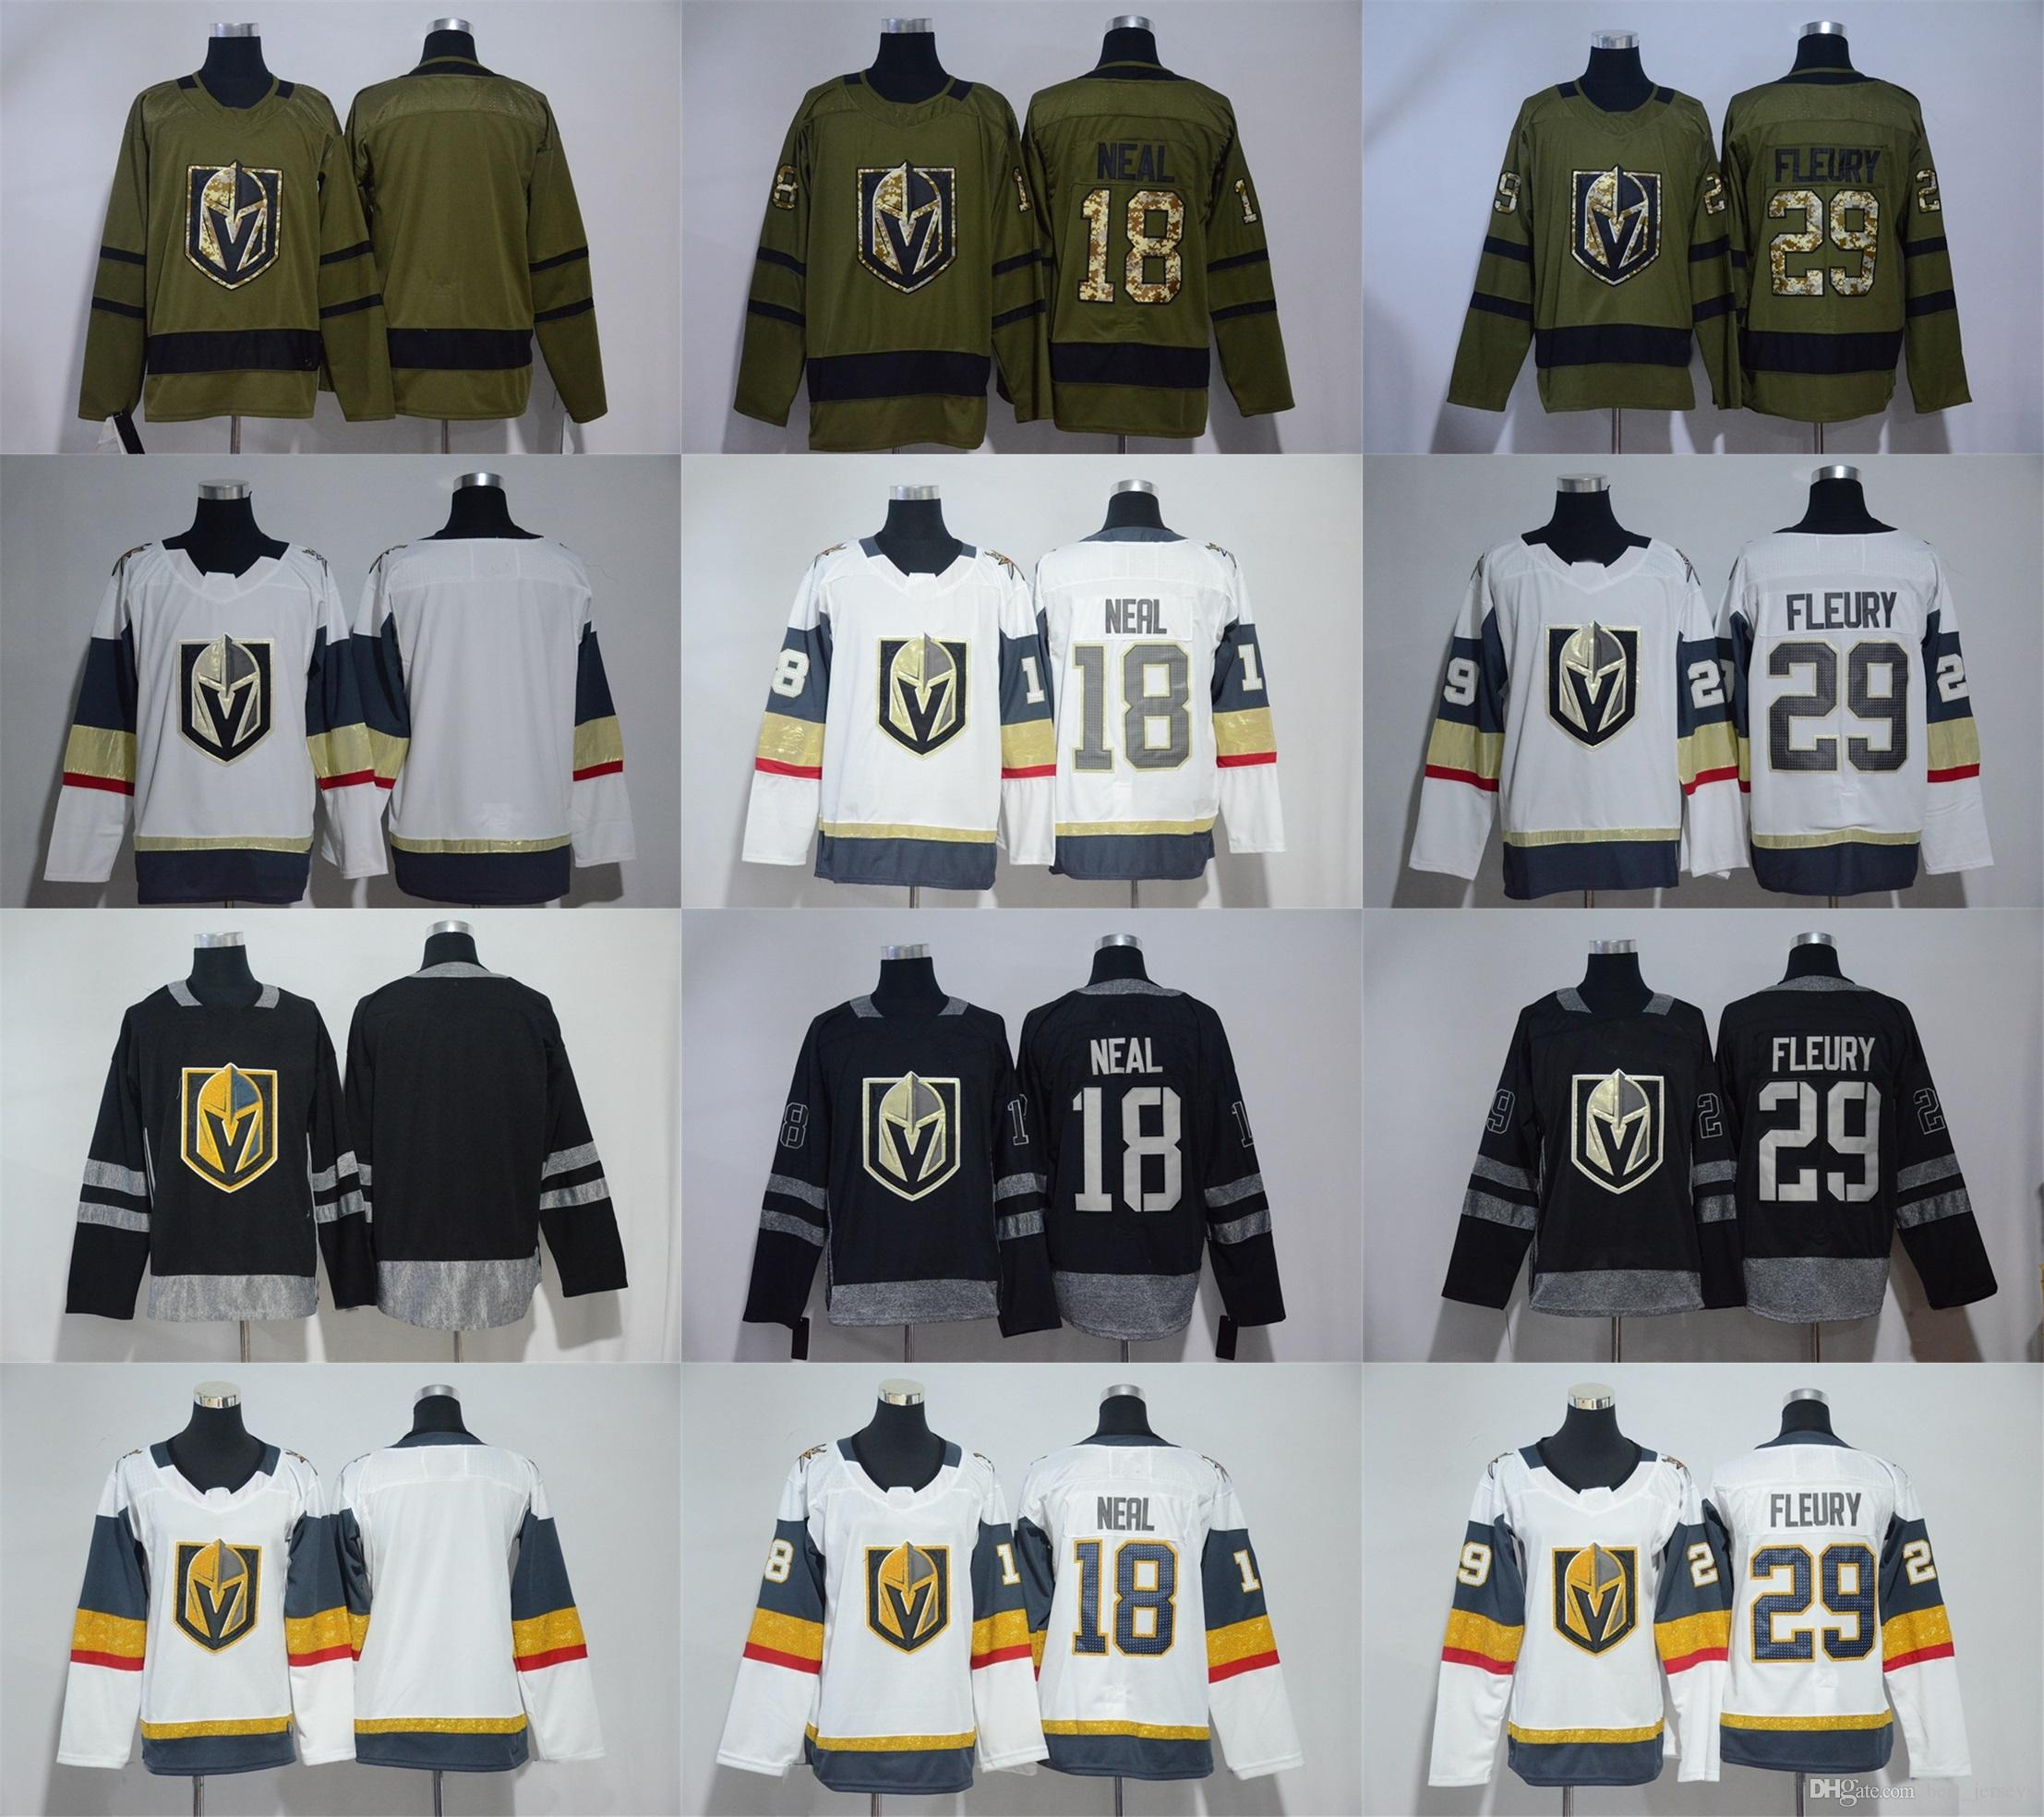 size 40 92e7b 4a673 2018 Vegas Golden Knights Stanley Cup Final Jerseys Vegas Golden Knights 29  Marc-Andre Fleury 18 James Neal 40 Jerseys set free DHL